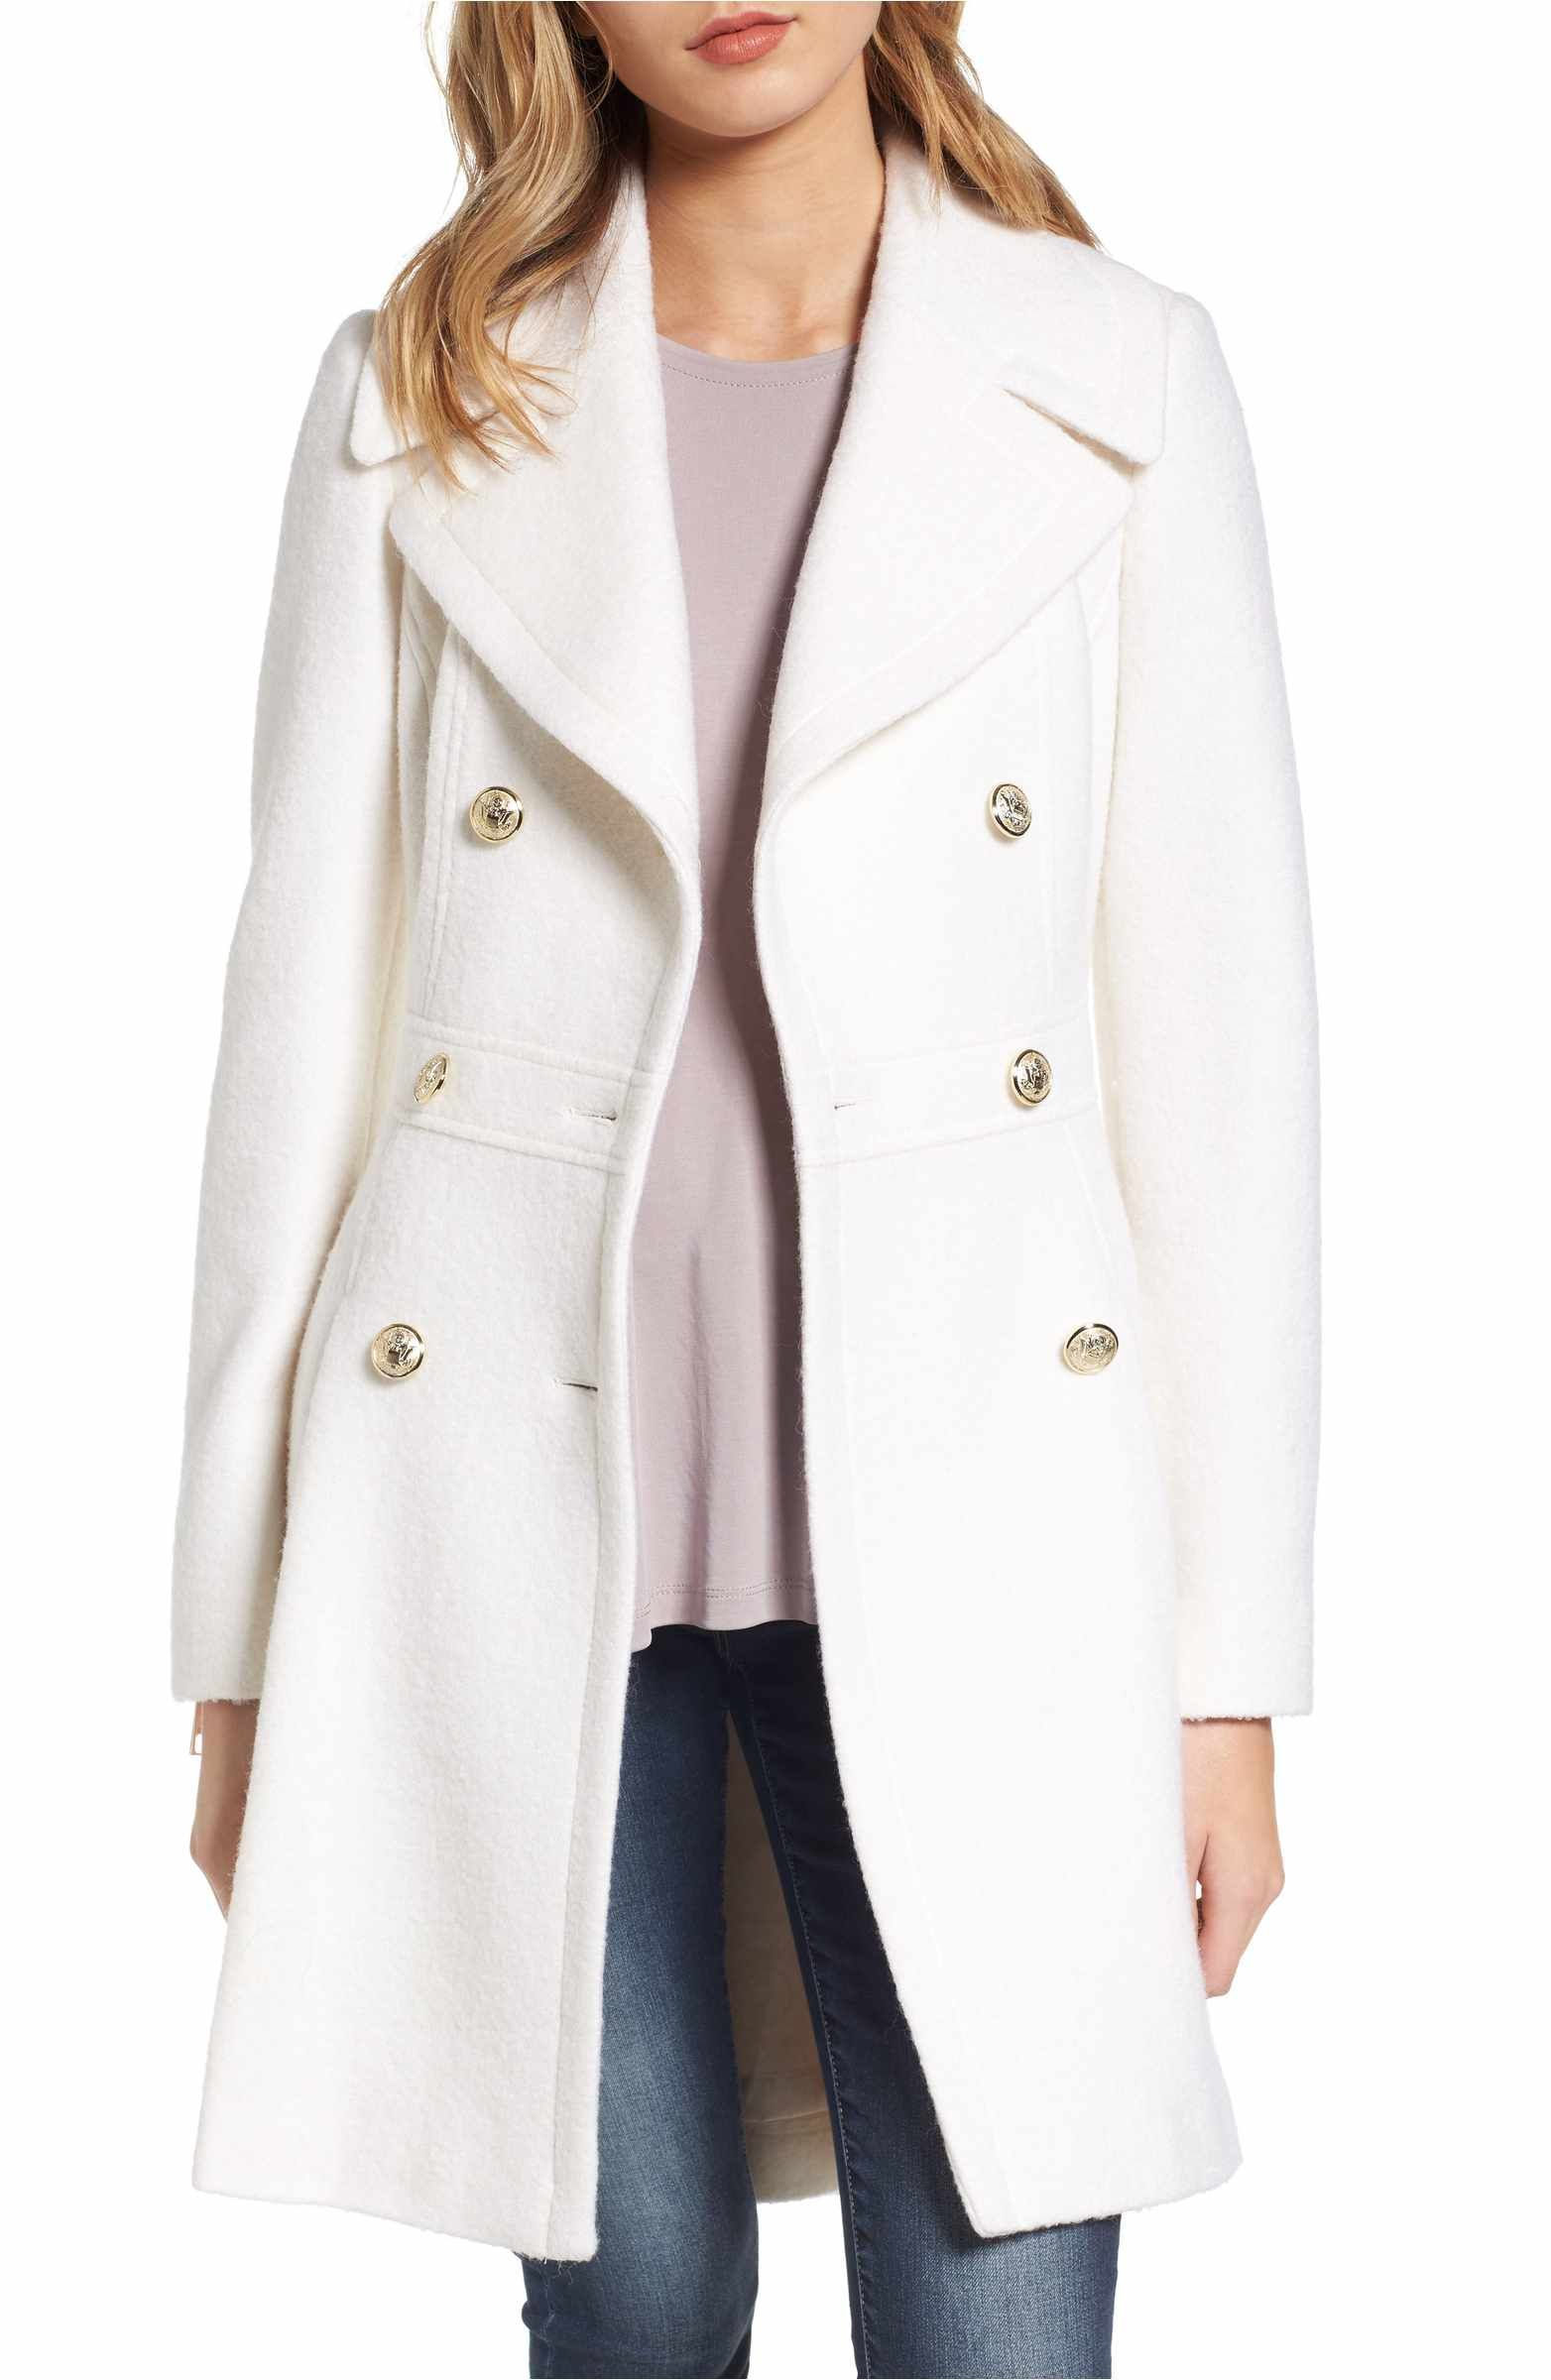 Guess Double Breasted Wool Blend Coat Regular Petite Nordstrom Wool Blend Coat Nordstrom Coats Coat [ 2400 x 1564 Pixel ]